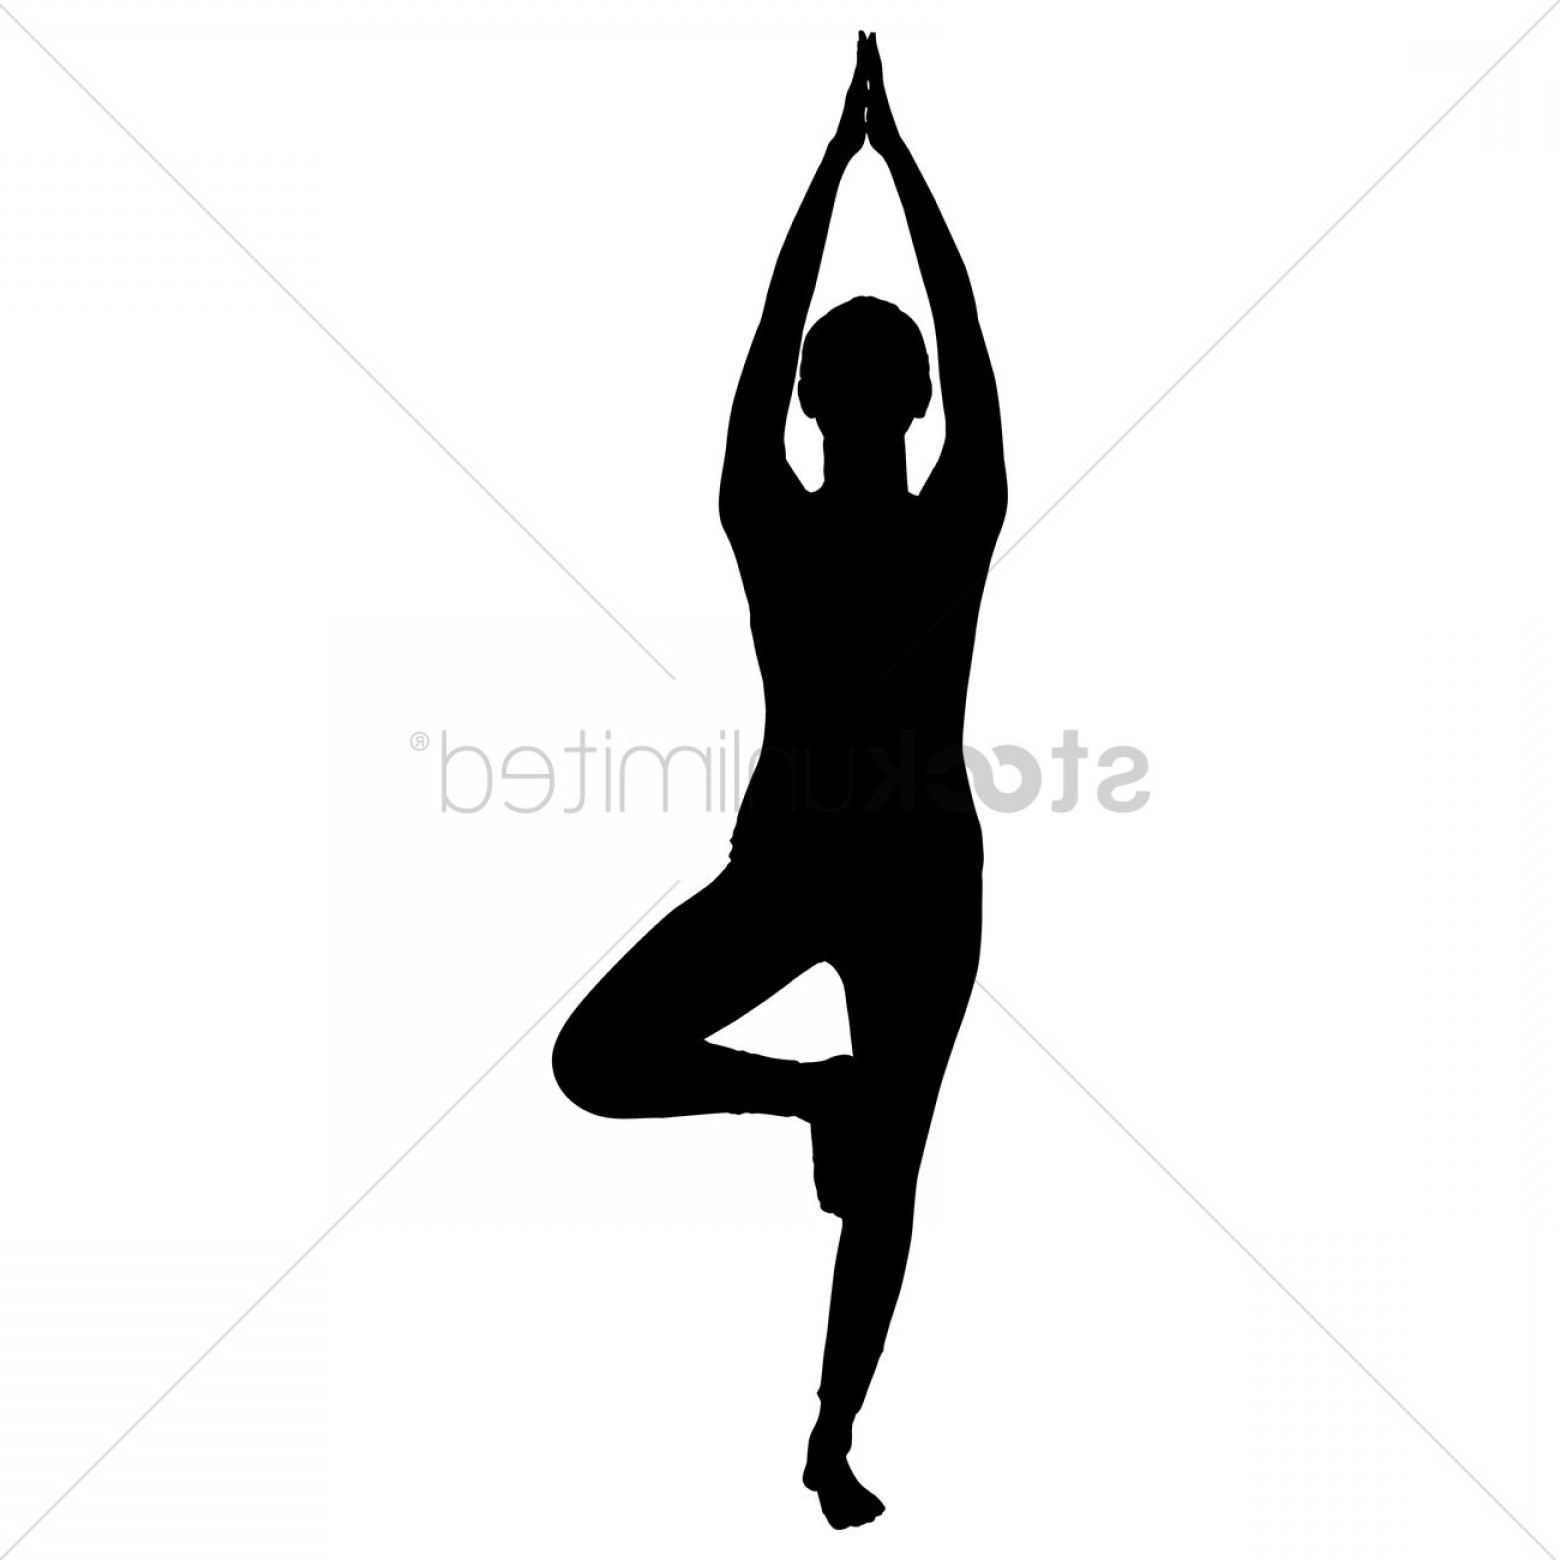 Yoga Vector Silhouette SVG: Silhouette Of A Woman Practicing Yoga